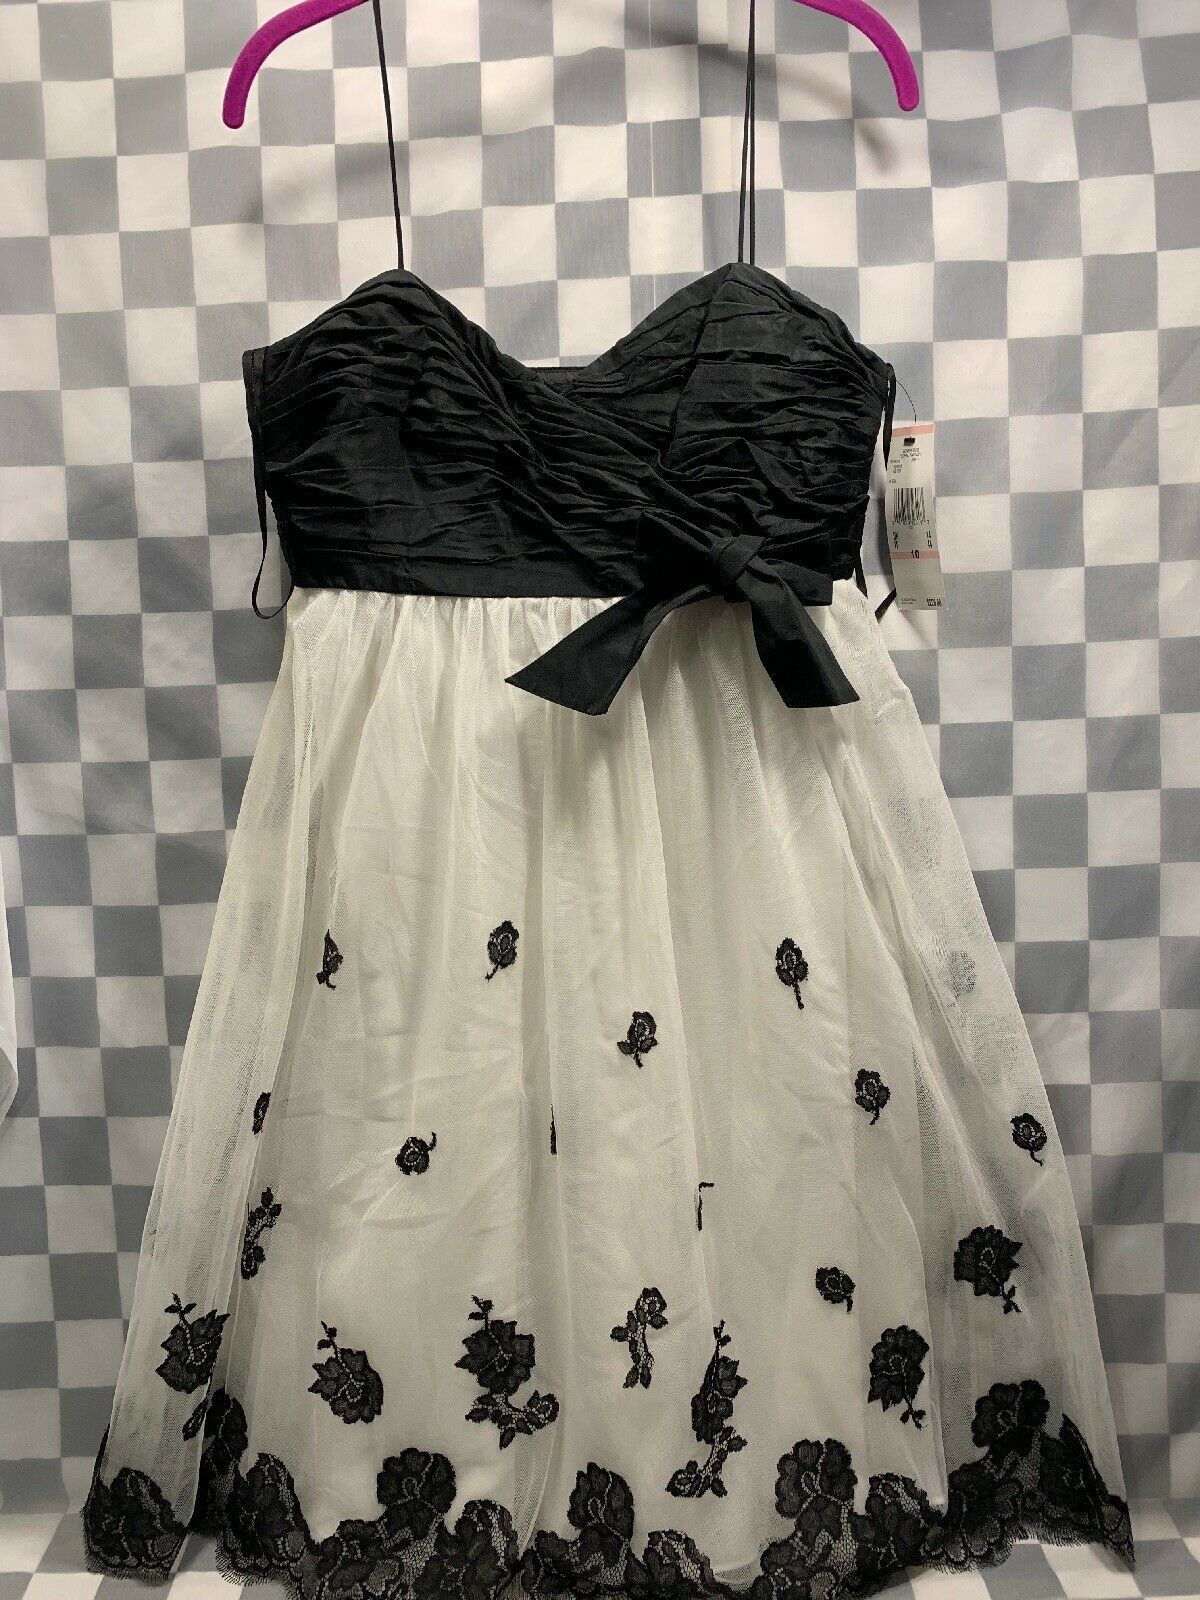 Primary image for ANNE KLEIN Dress Floral Fantasy Ivory Black Women's Size 10 NEW NWT MSRP $220